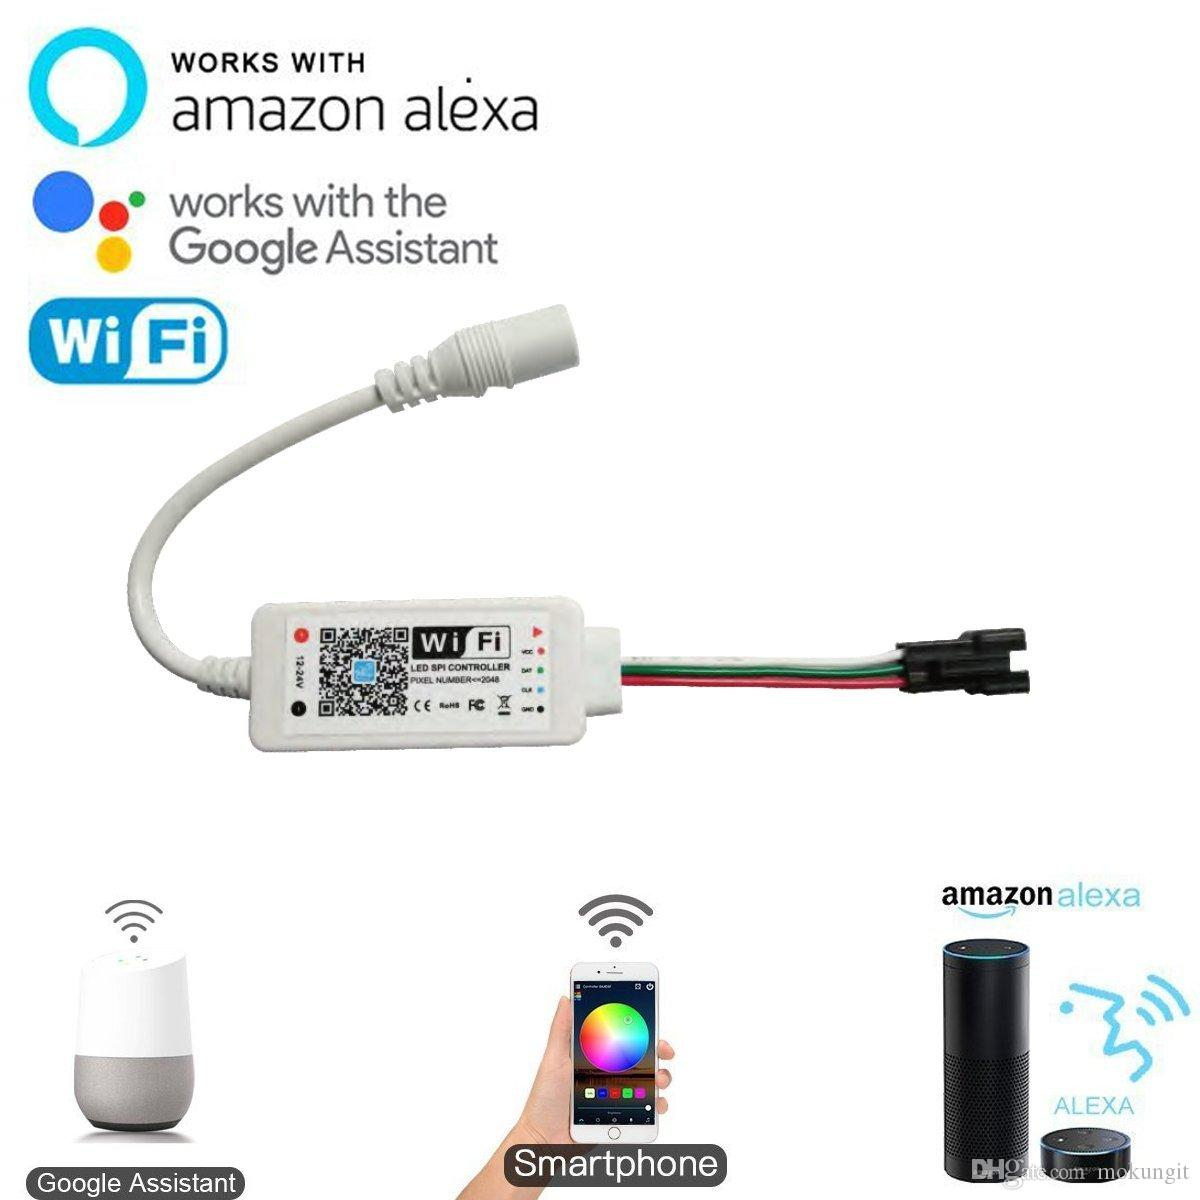 hot sale online 4dfa0 e02b2 WiFi Addressable RGB LED Strip Controller,LED SPI Controller for WS2811,  UCS1903, WS2812B, SM16703,SK6812,WiFi Remote control Work With Amaz